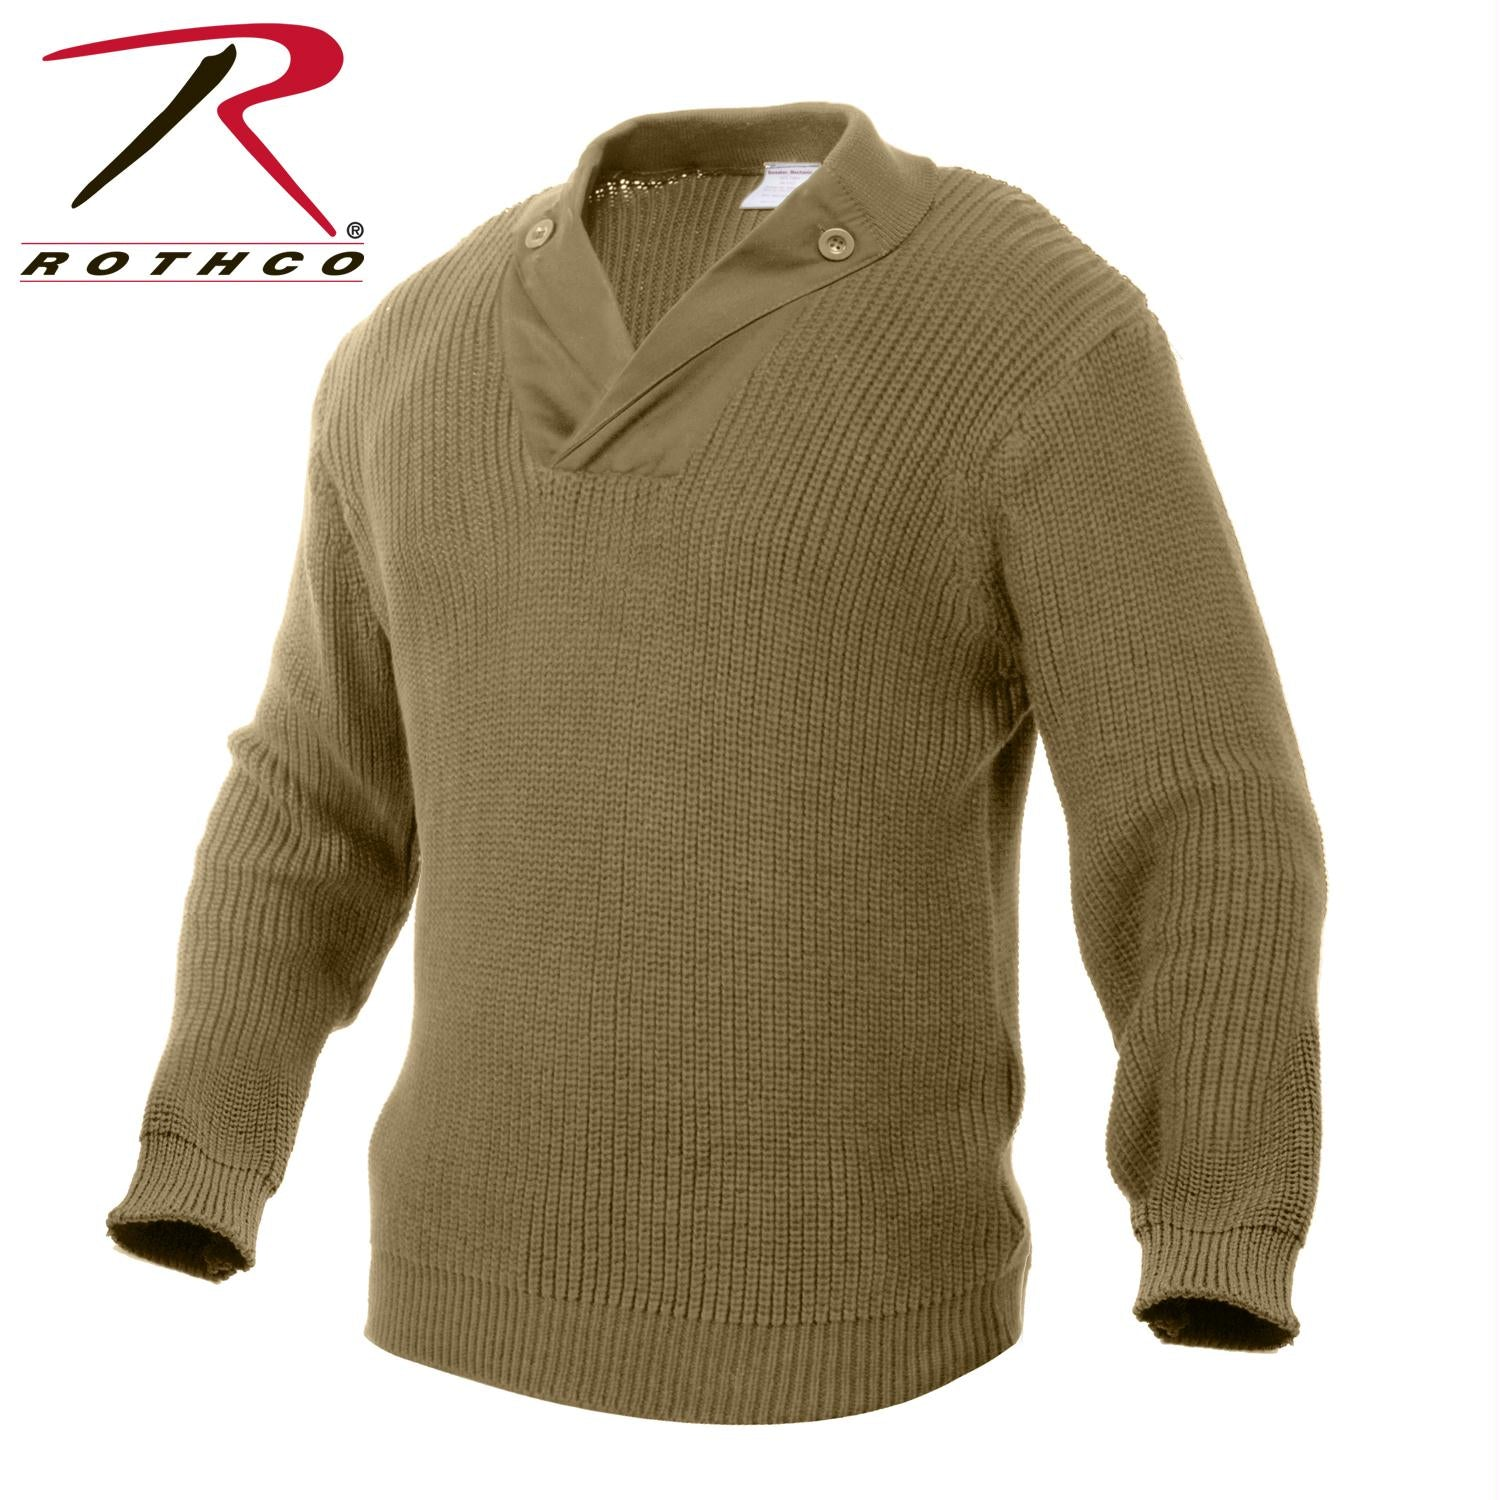 Rothco WWII Vintage Mechanics Sweater - Khaki / S